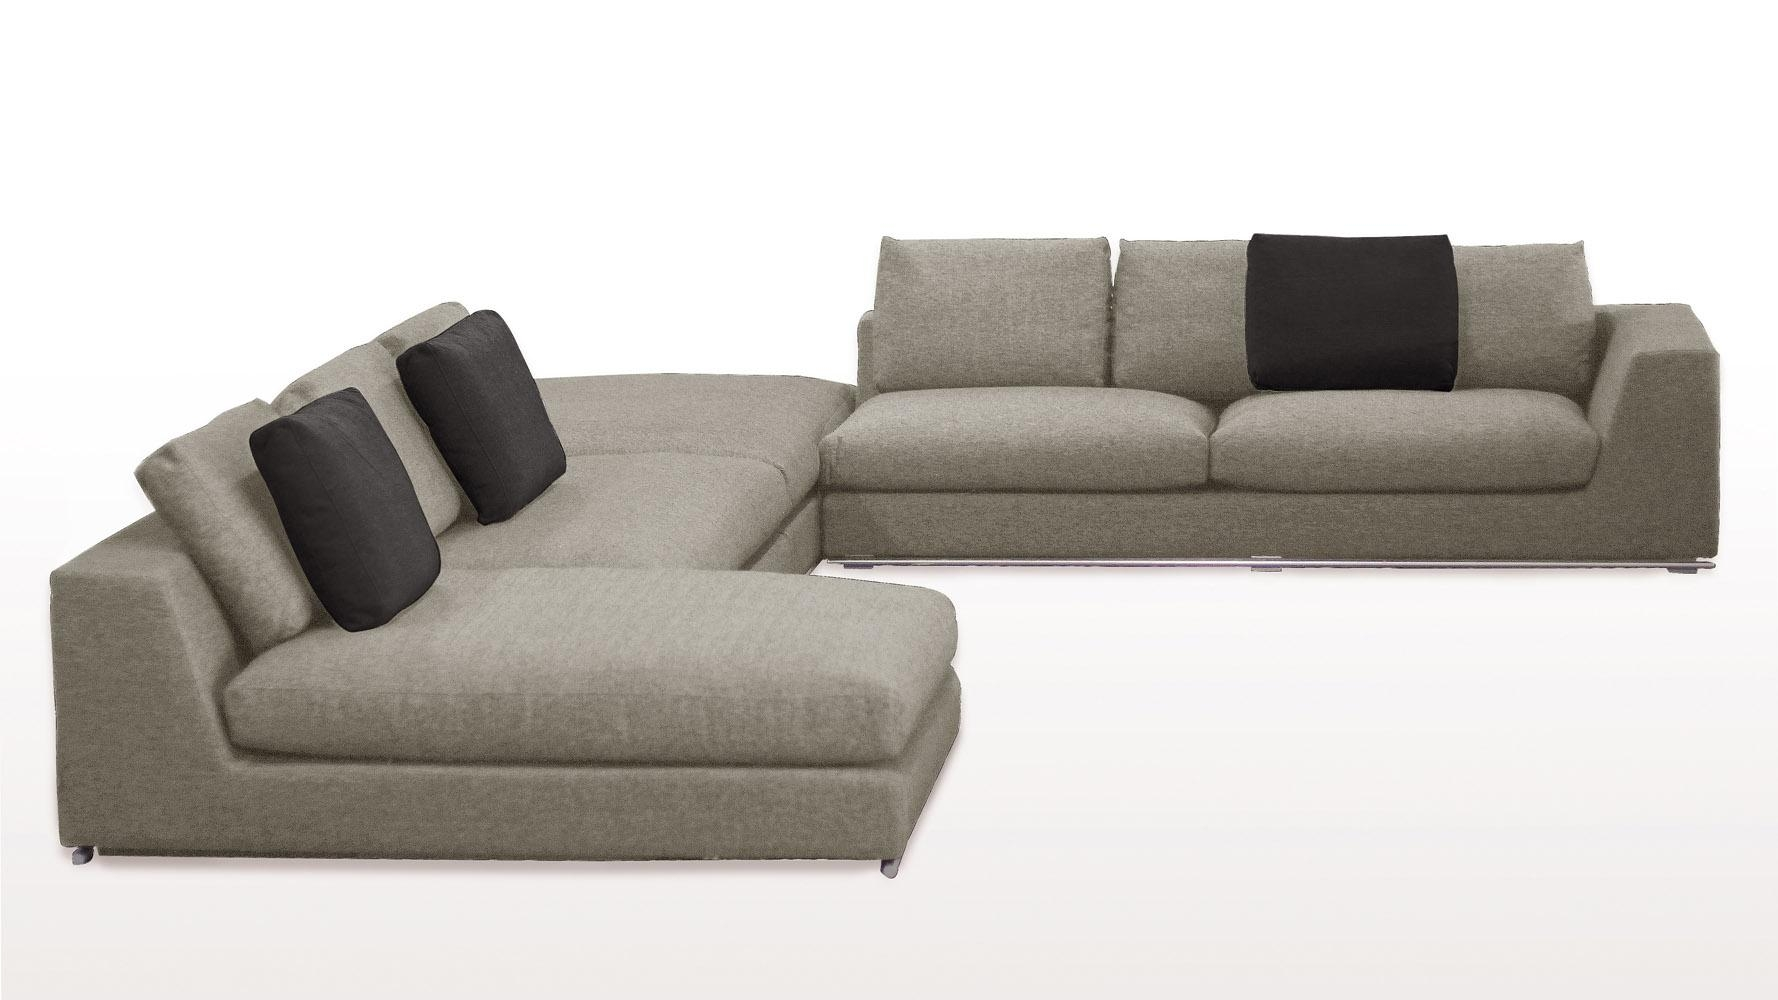 Beautiful Low Profile Sectional Sofa 40 On Sofas And Couches Ideas Within Low Sectional (Image 1 of 20)